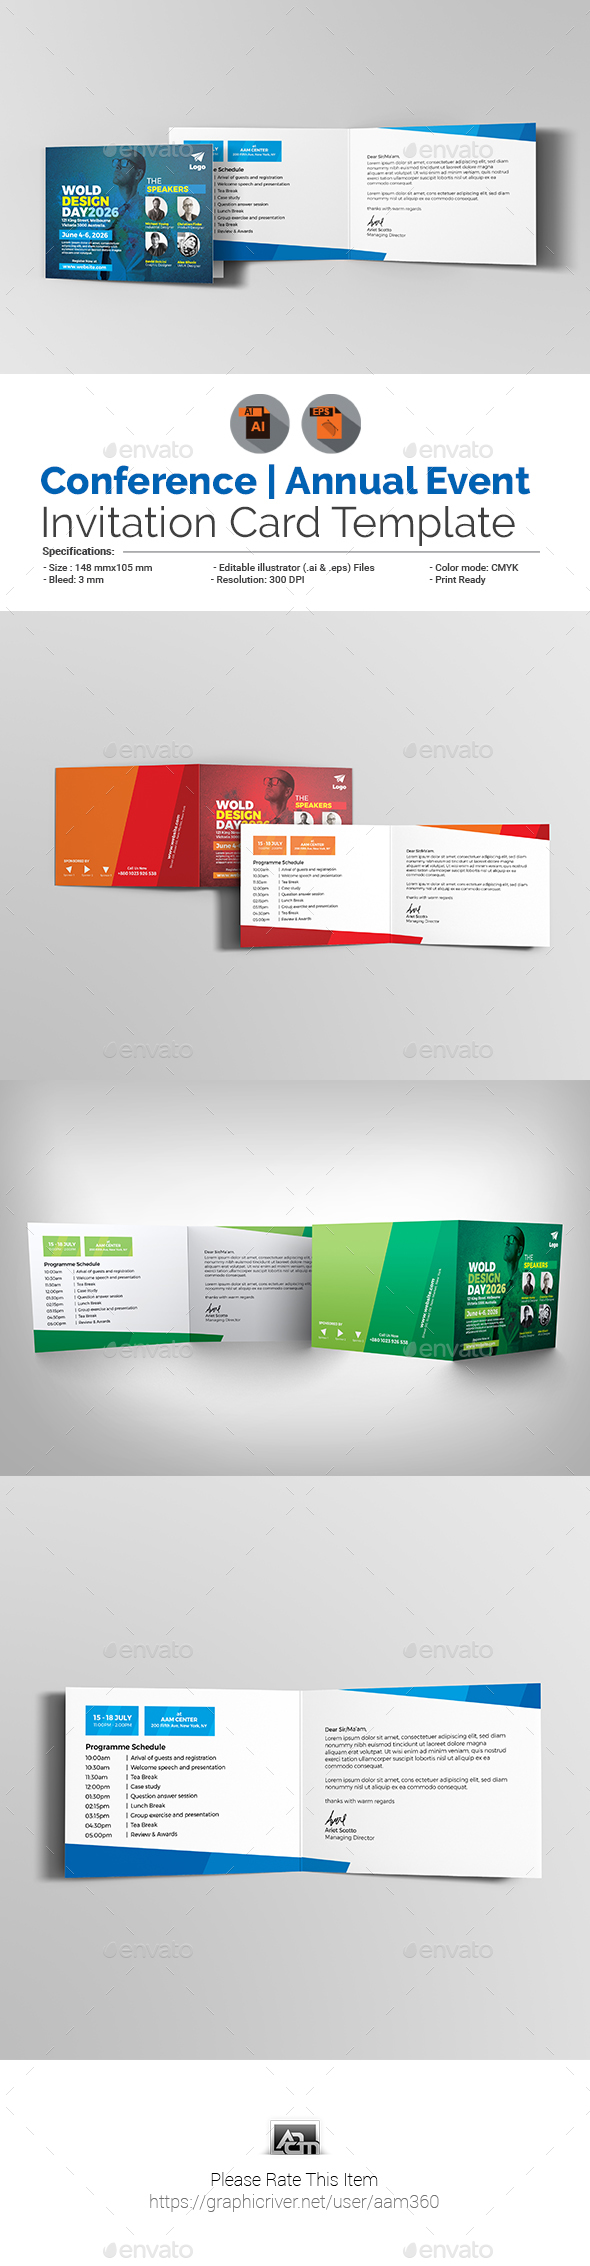 Conference Invitation Card Template - Cards & Invites Print Templates